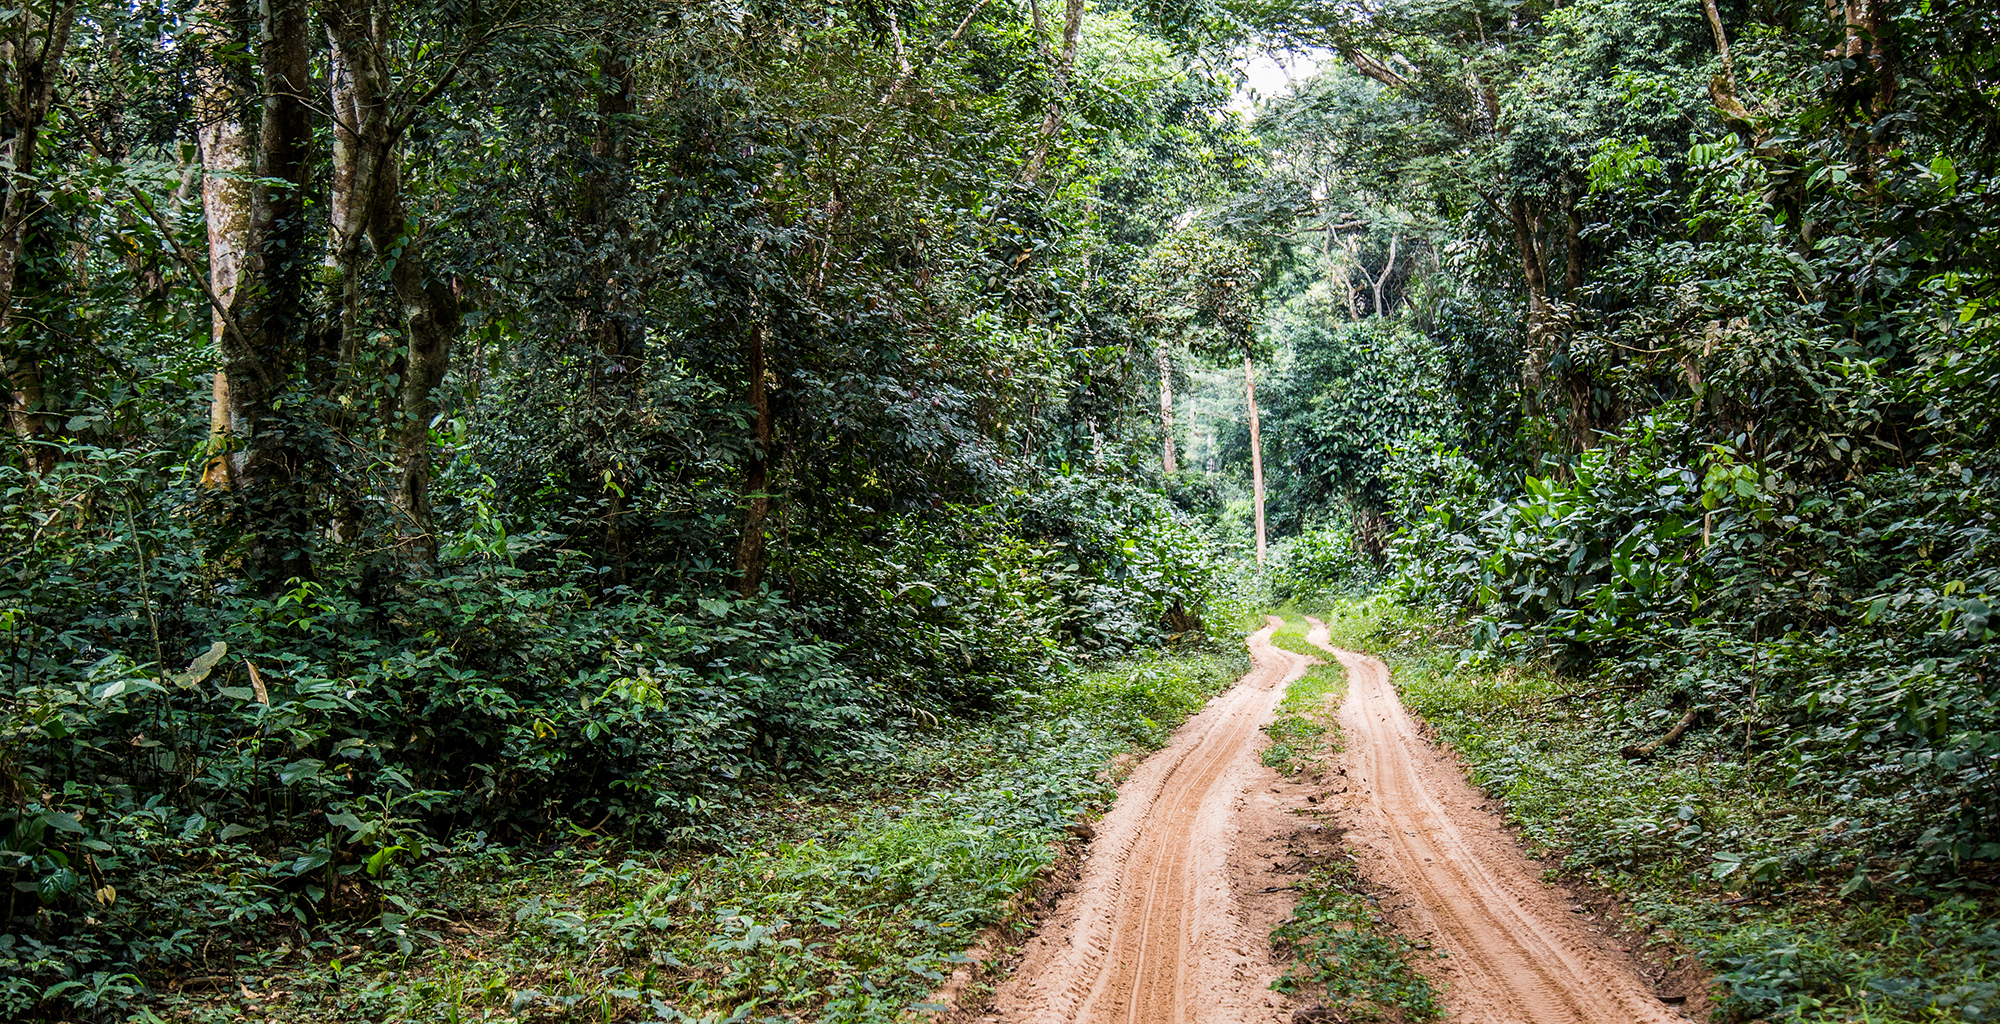 Republic-of-Congo-Odzala-Road